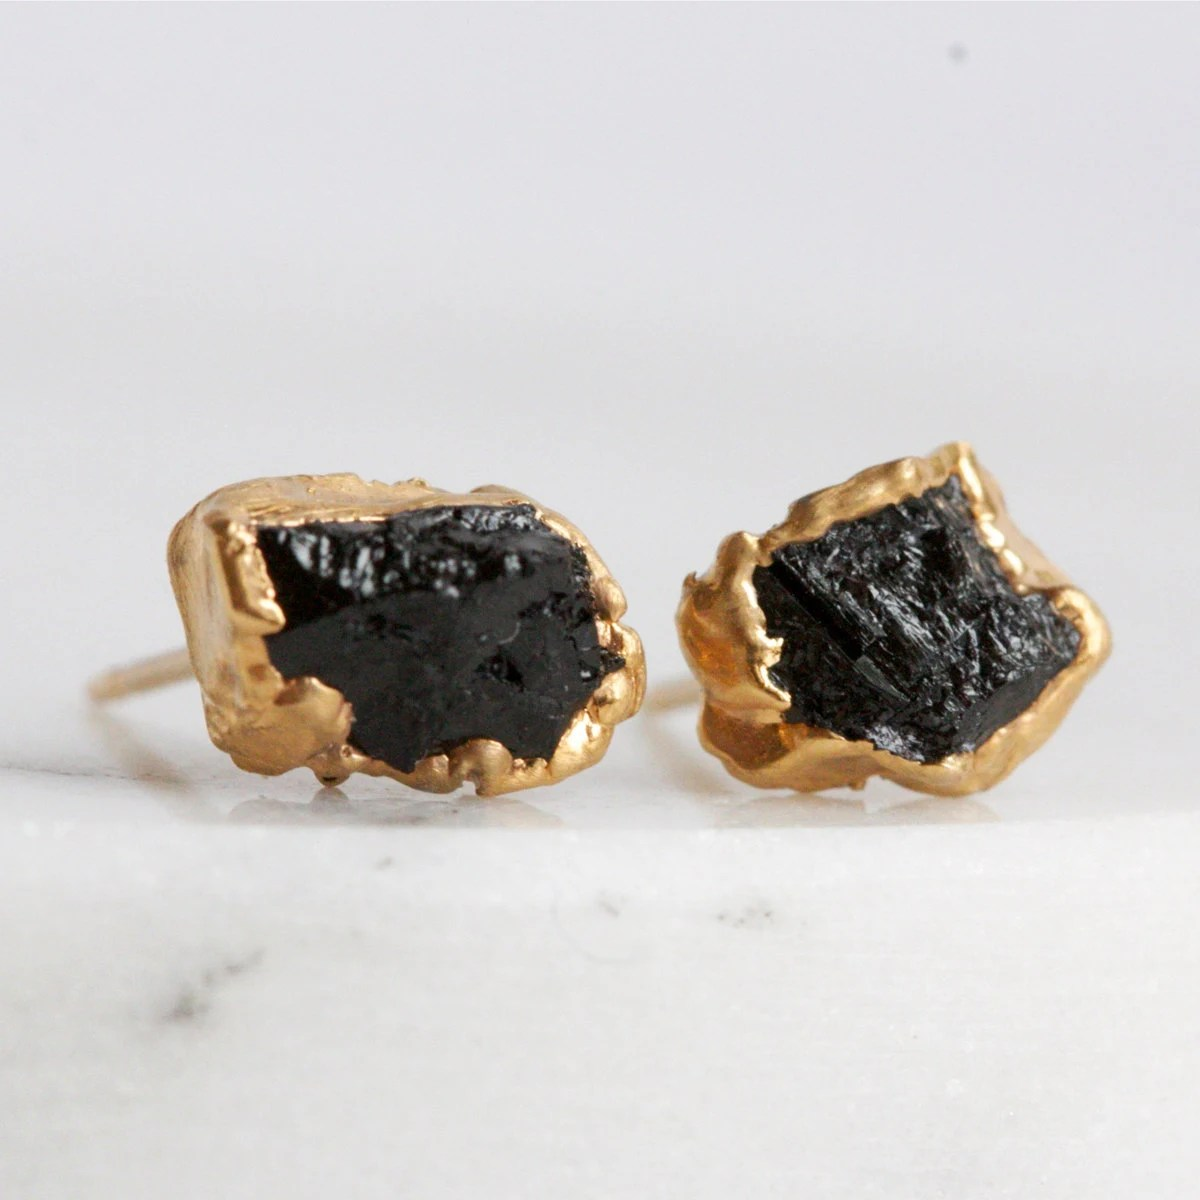 tourmaline earrings / black tourmaline / mineral by